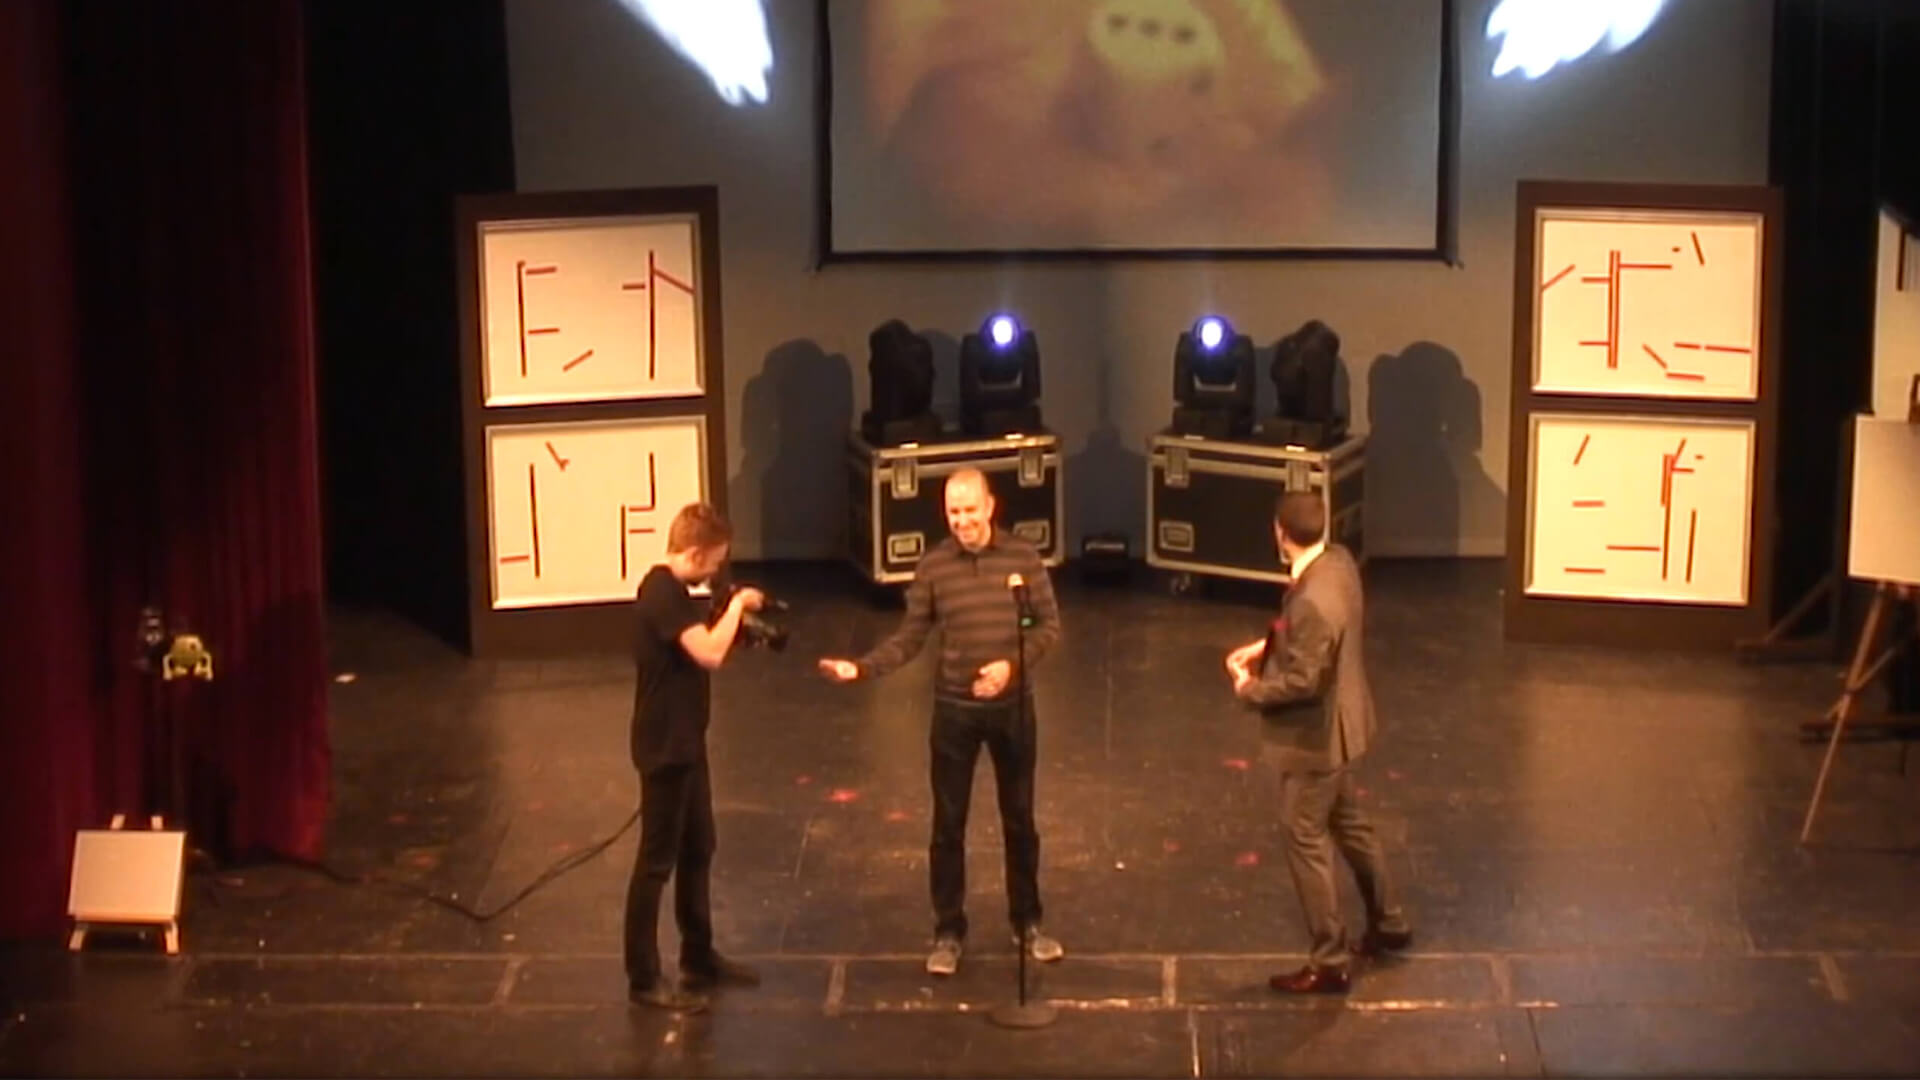 Manchester magician Aaron Calvert in a theatre performing stage entertainment